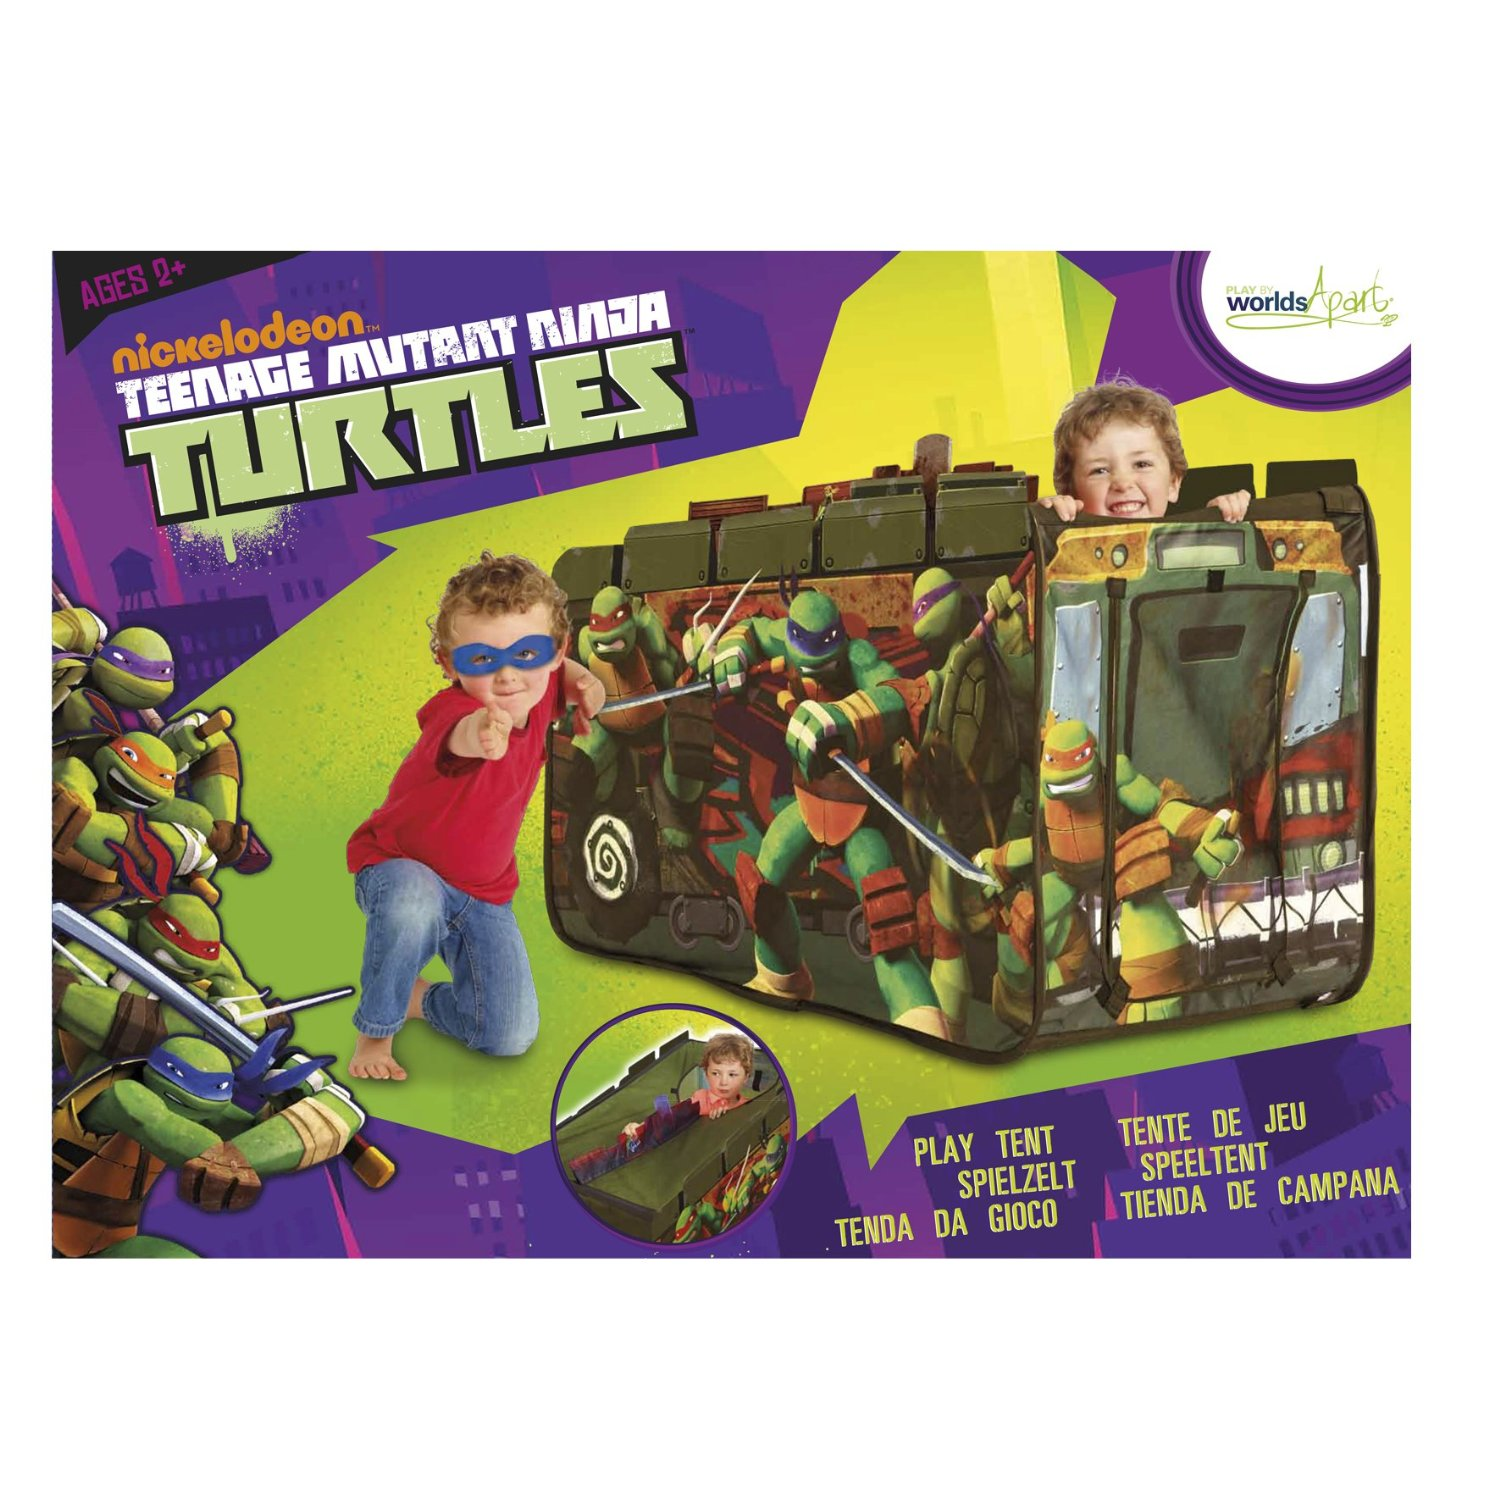 Battle Tank Feature Tent (2012 toy) | TMNTPedia | FANDOM powered by Wikia  sc 1 st  TMNTPedia - Fandom & Battle Tank Feature Tent (2012 toy) | TMNTPedia | FANDOM powered ...